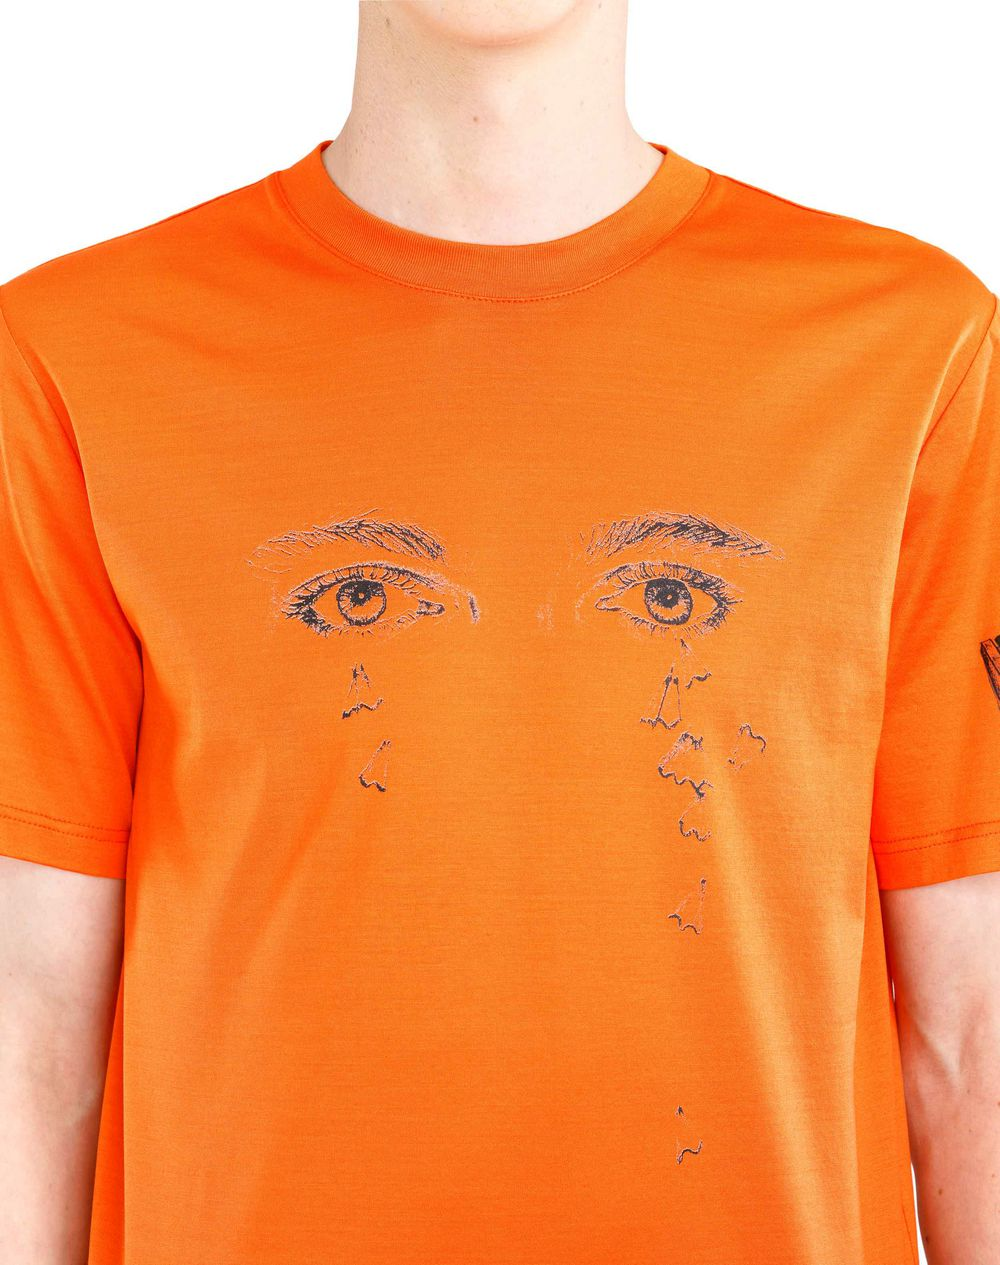 "ORANGE ""PENCILS SHAVINGS"" T-SHIRT BY CÉDRIC RIVRAIN - Lanvin"